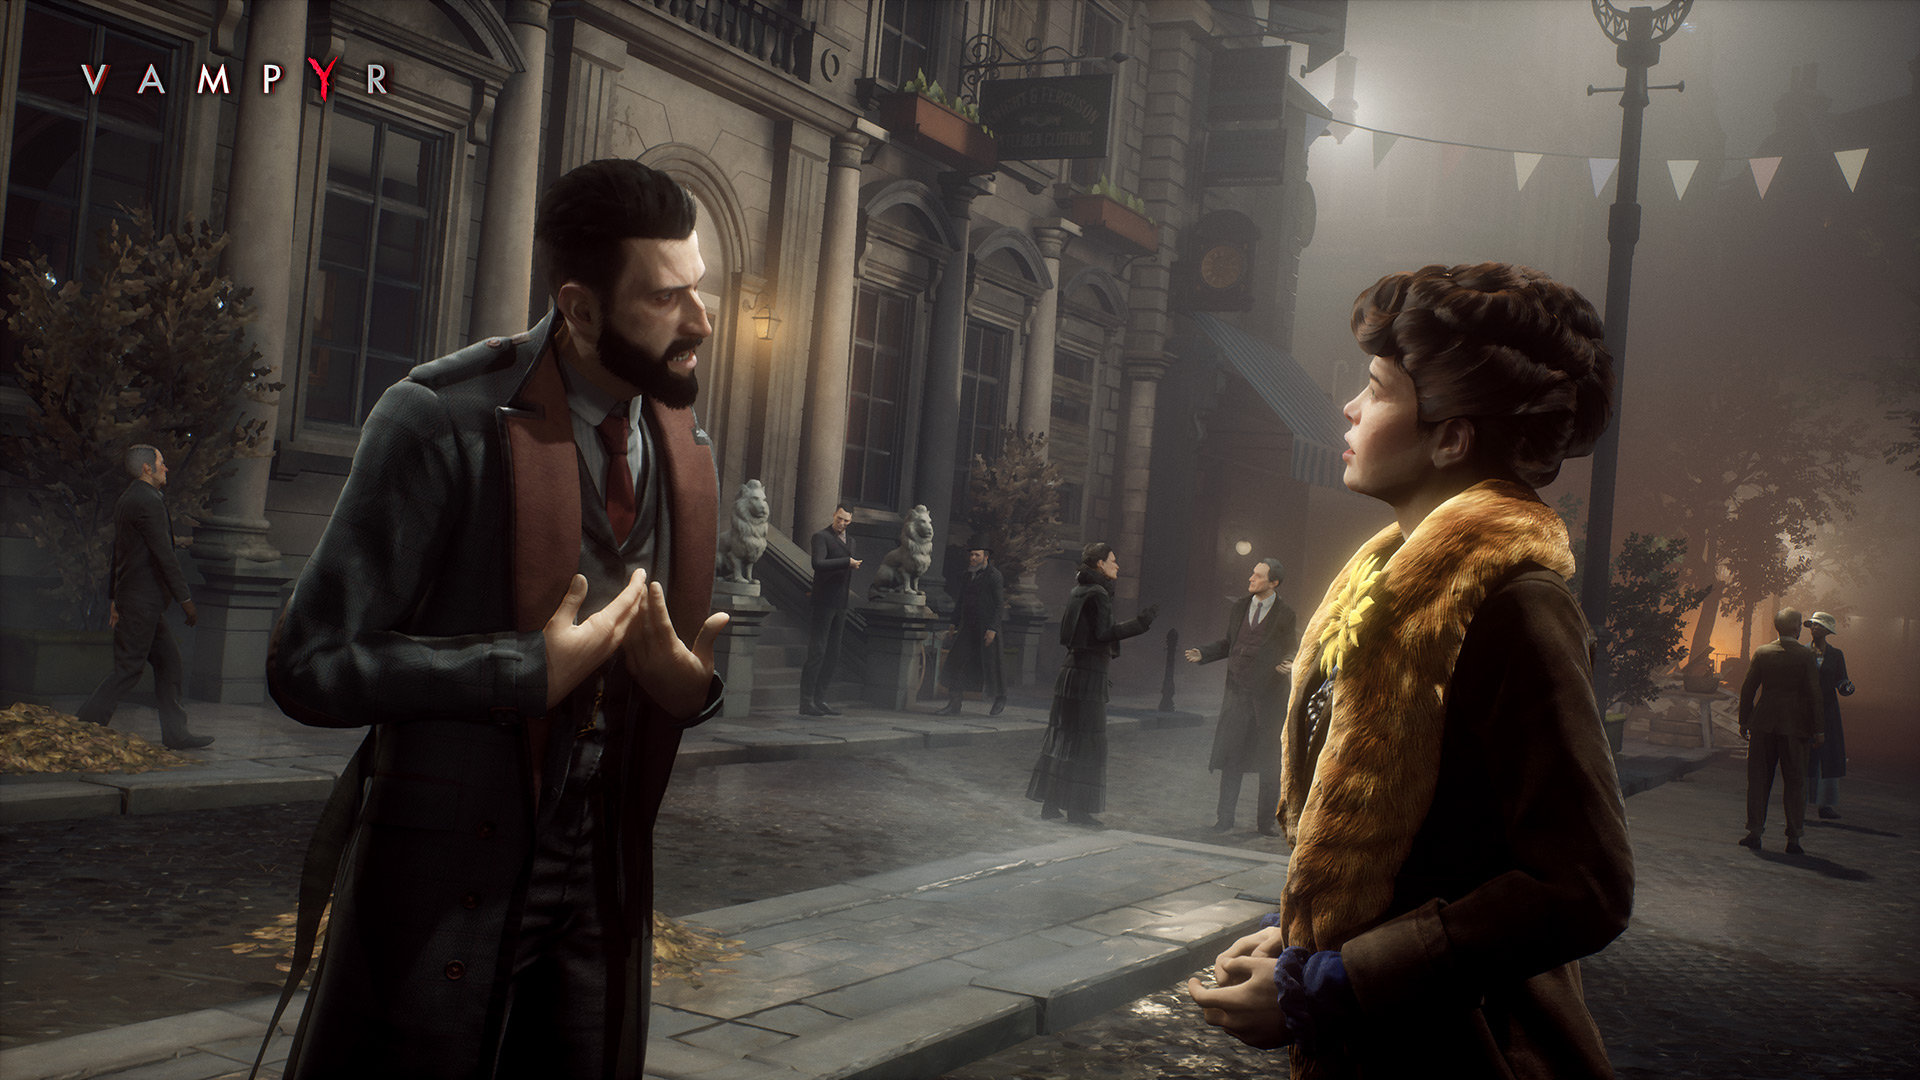 vampyr-screen-03-ps4-us-04may18?$MediaCa